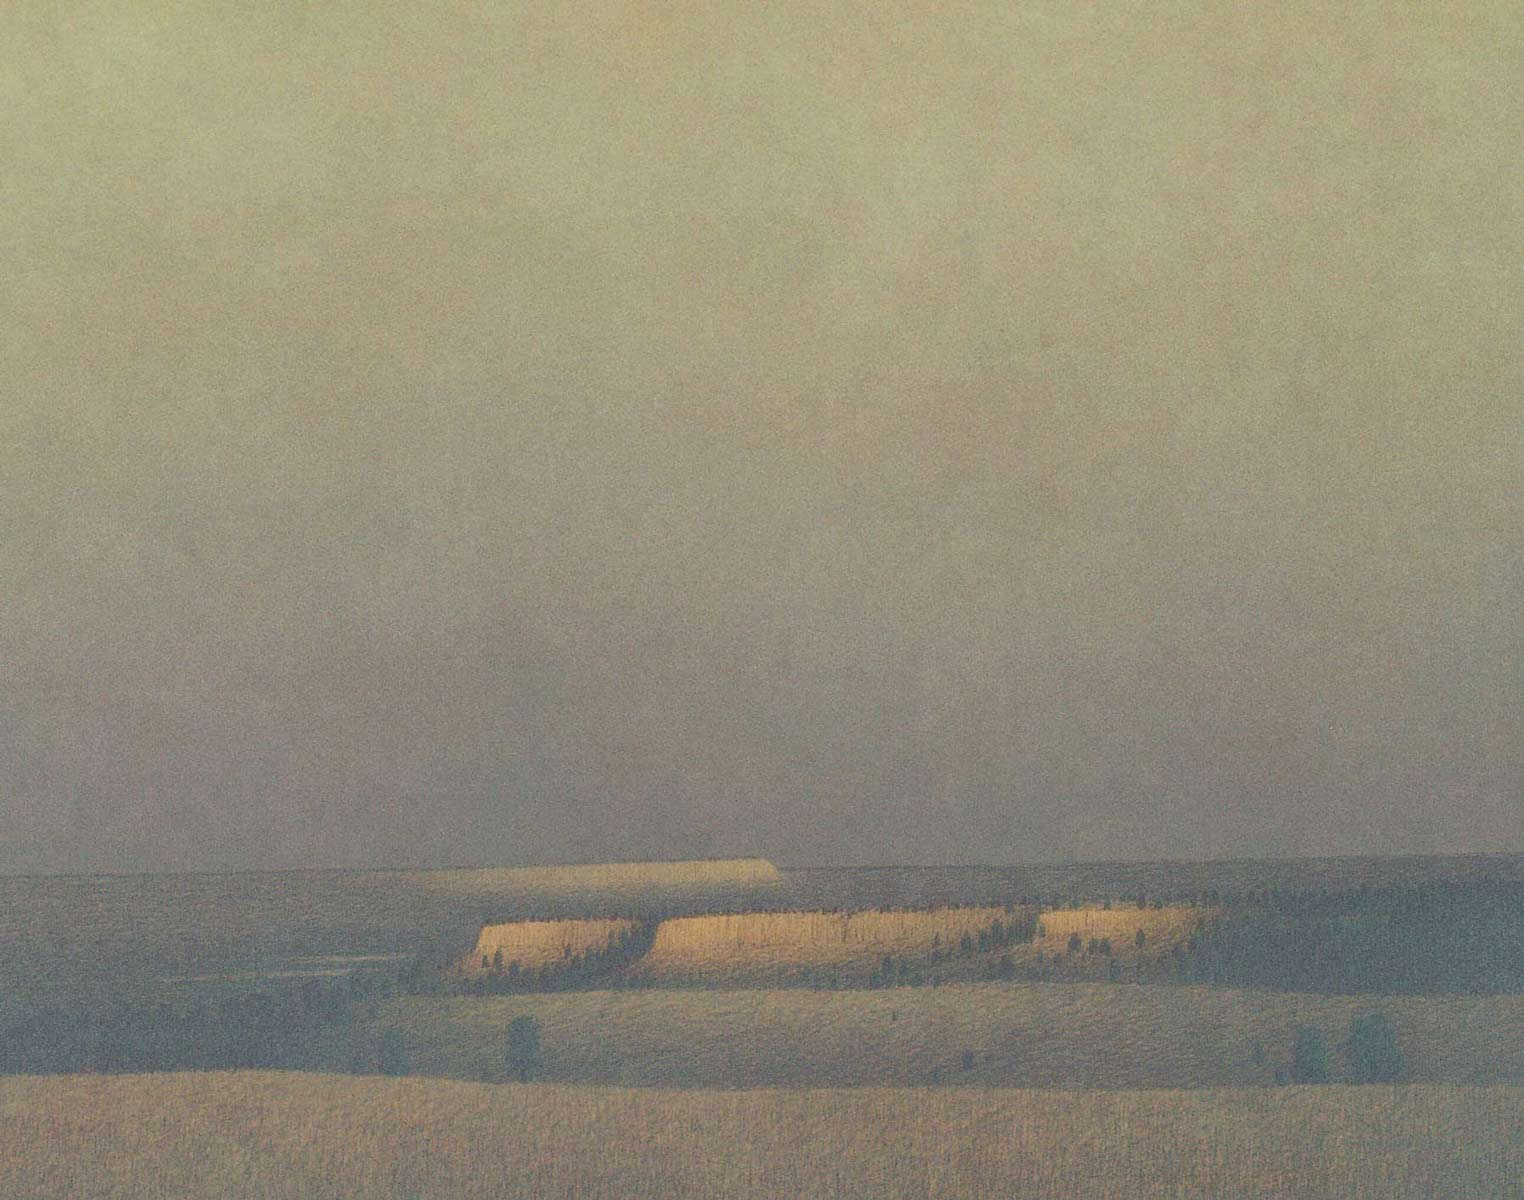 Chatham-Twilight in the Badlands